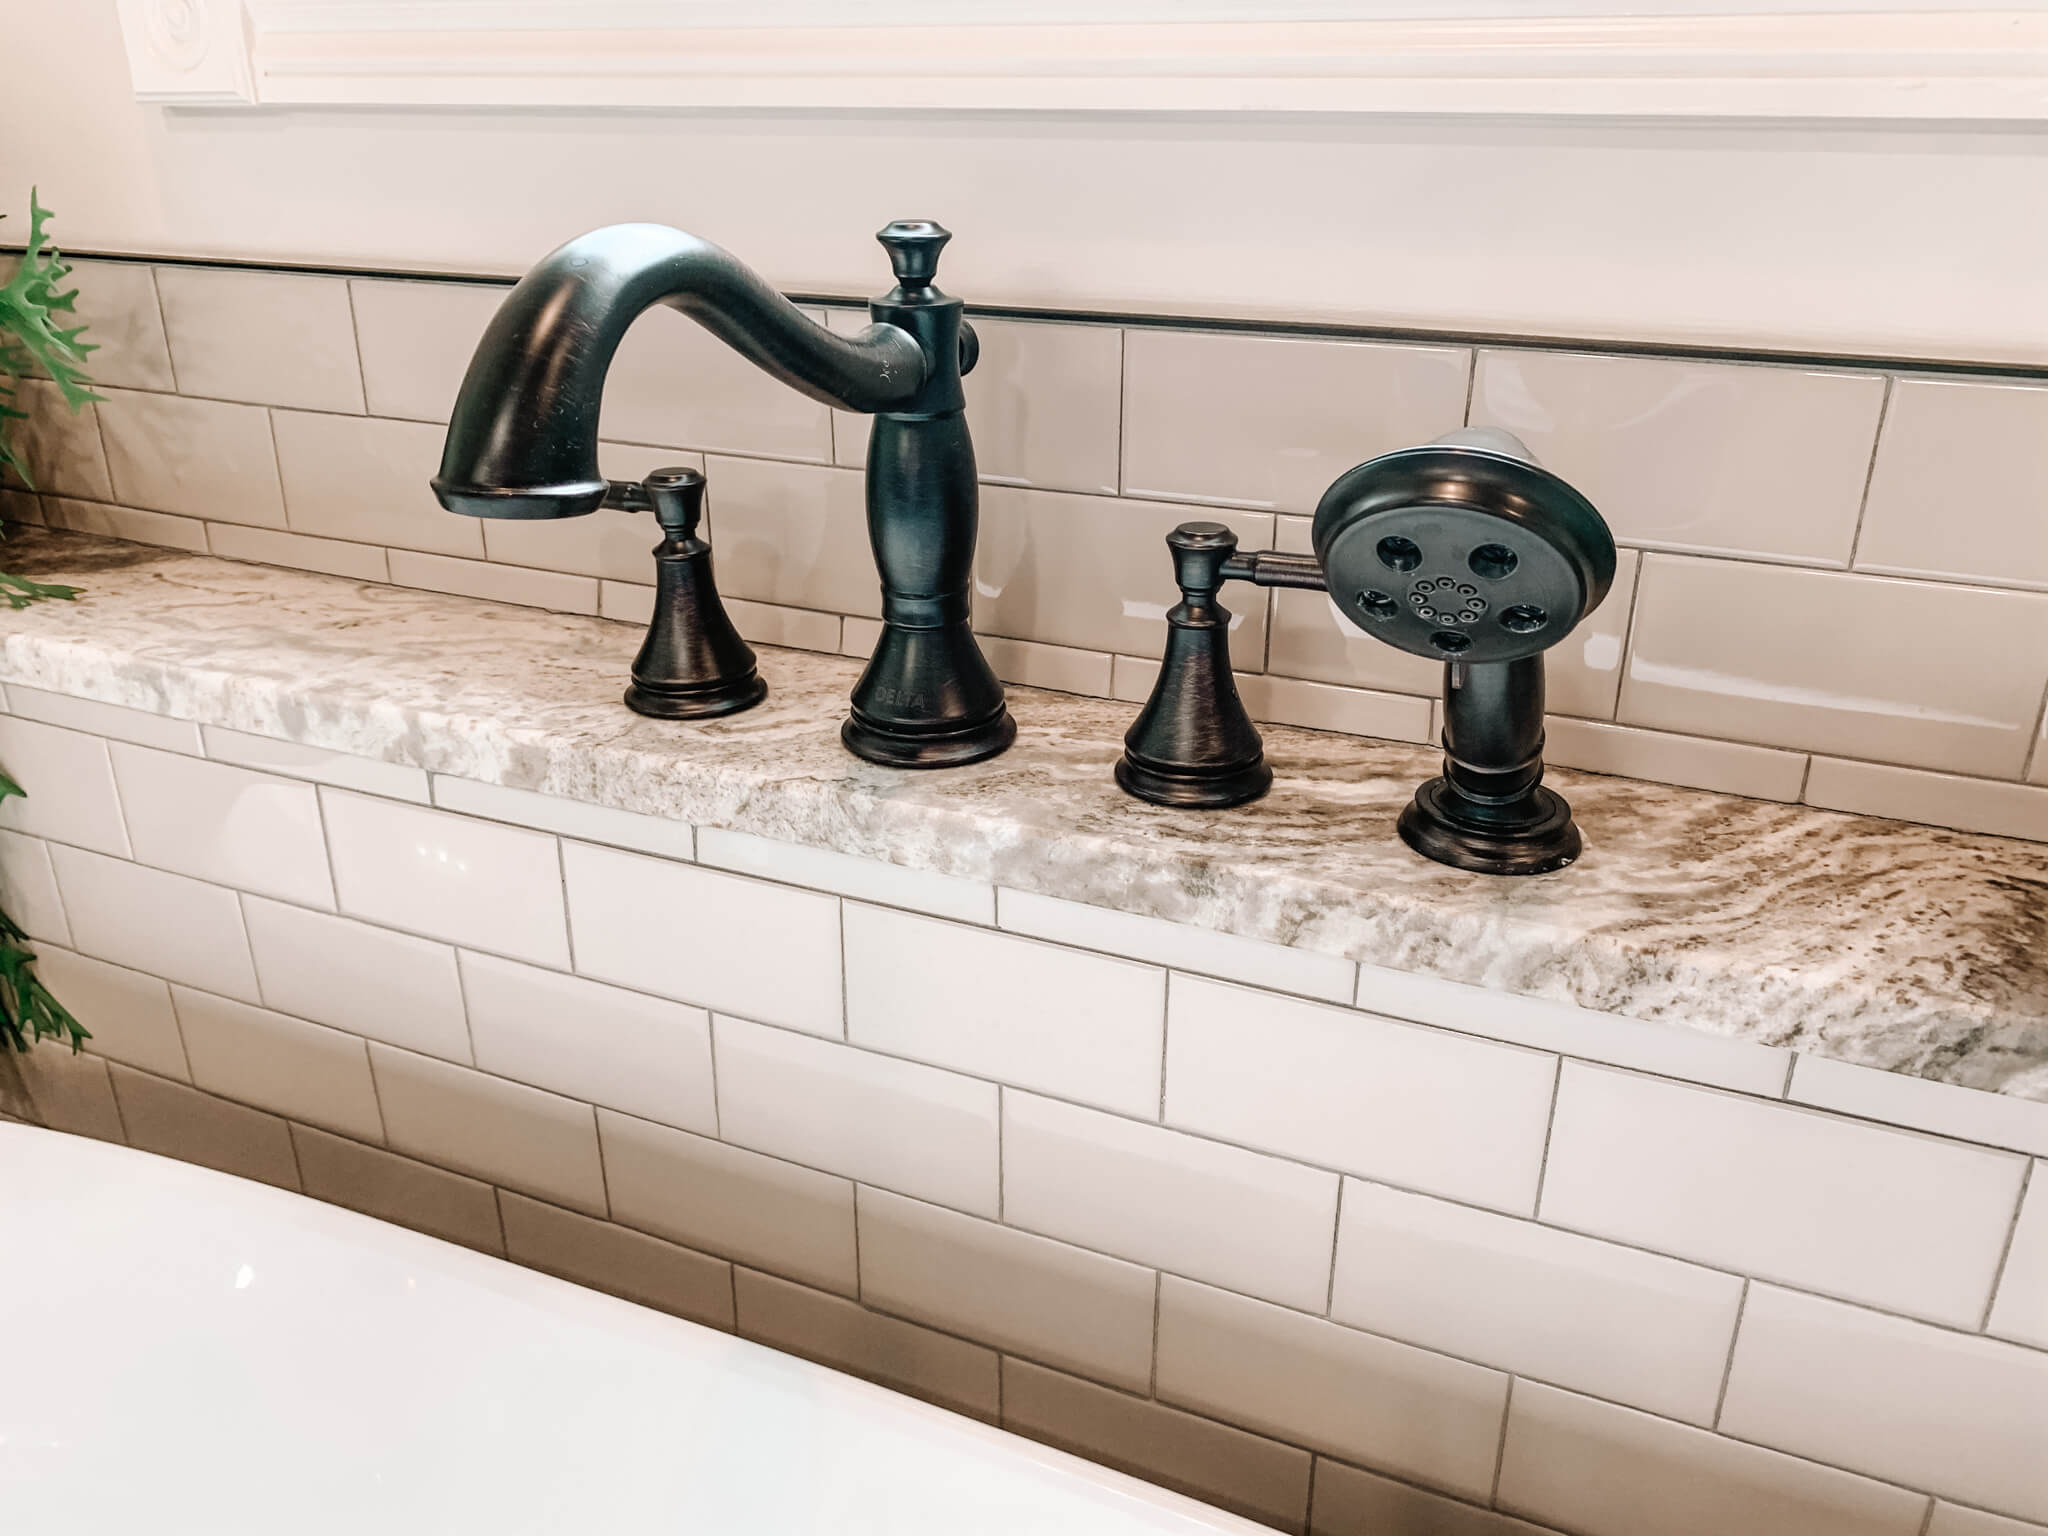 Buying Plumbing Faucets for a bathroom remodel